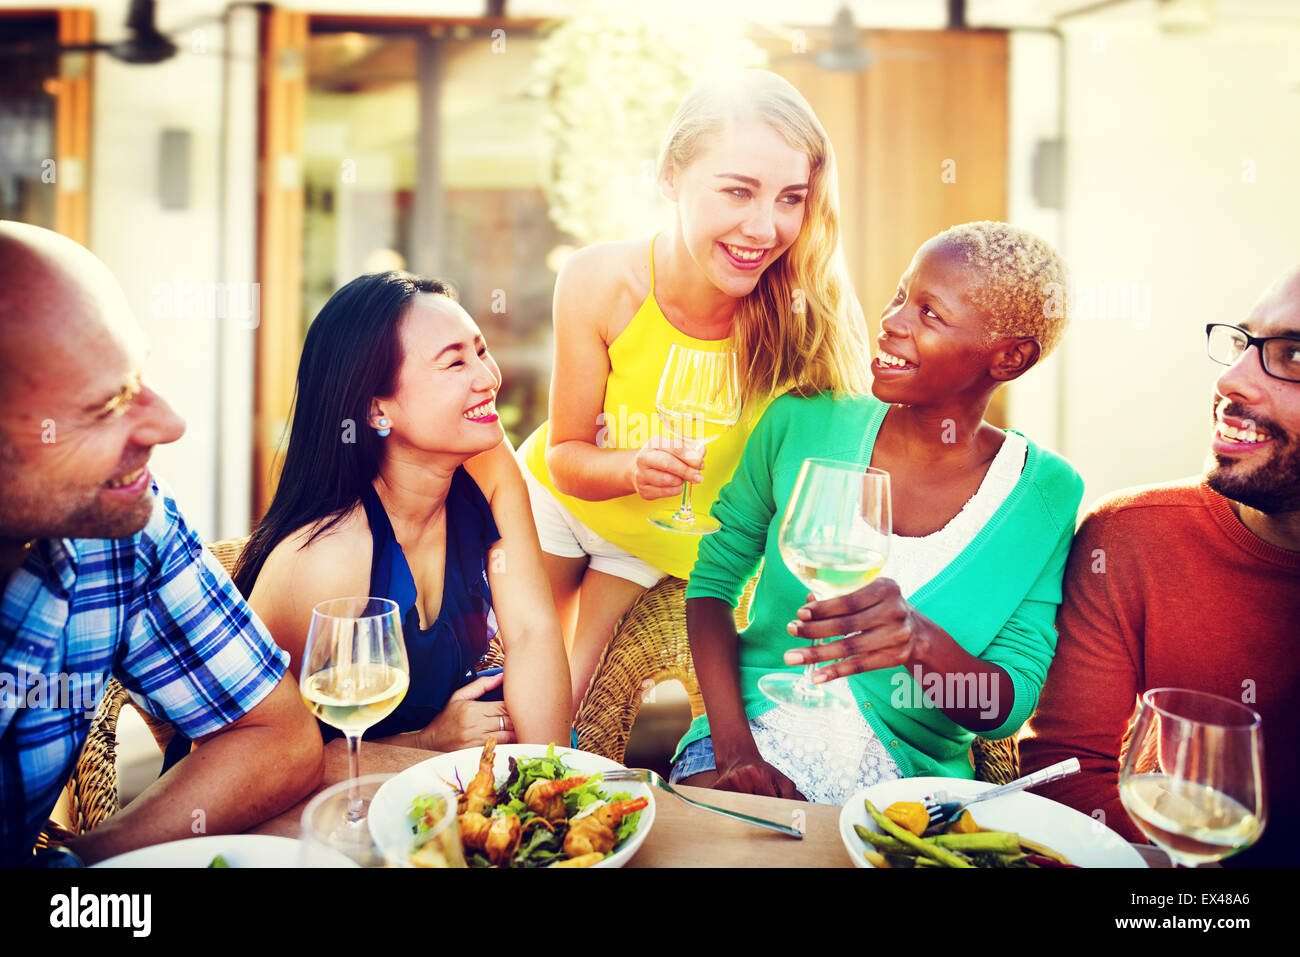 Diverse People Luncheon Outdoors Food Concept - Stock Image